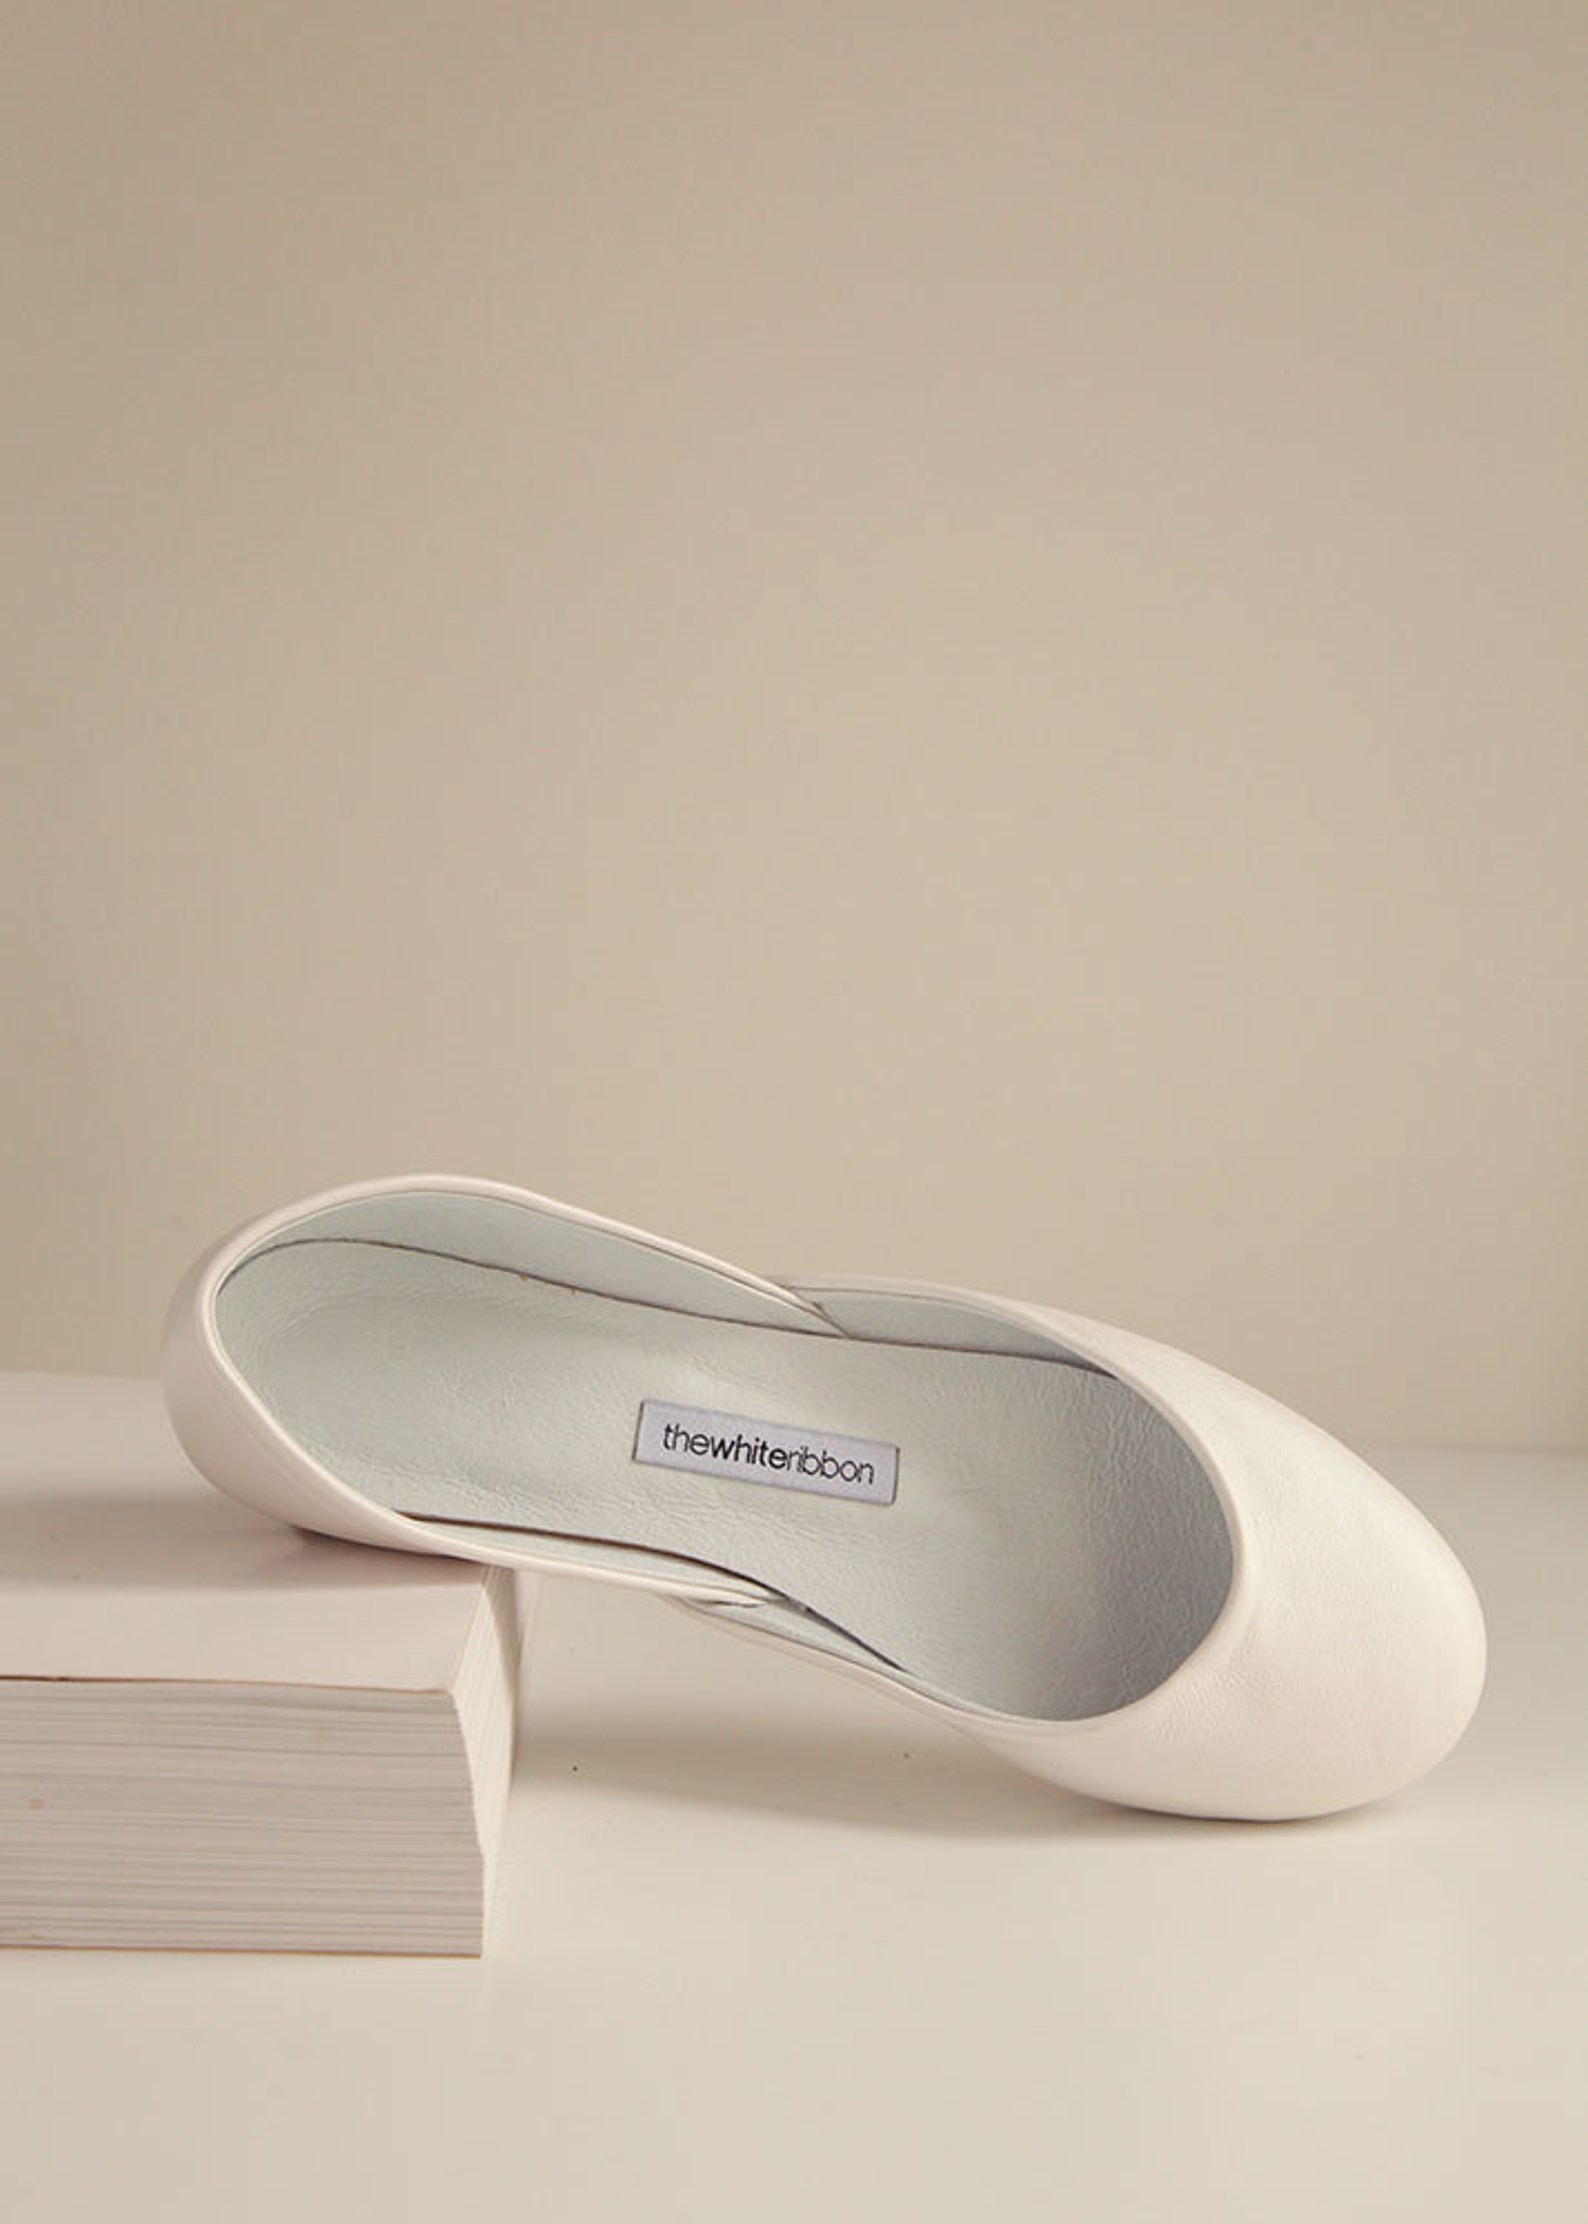 the classic ballet flats in pearl ivory | pointe style shoes | pearl ivory | ready to ship